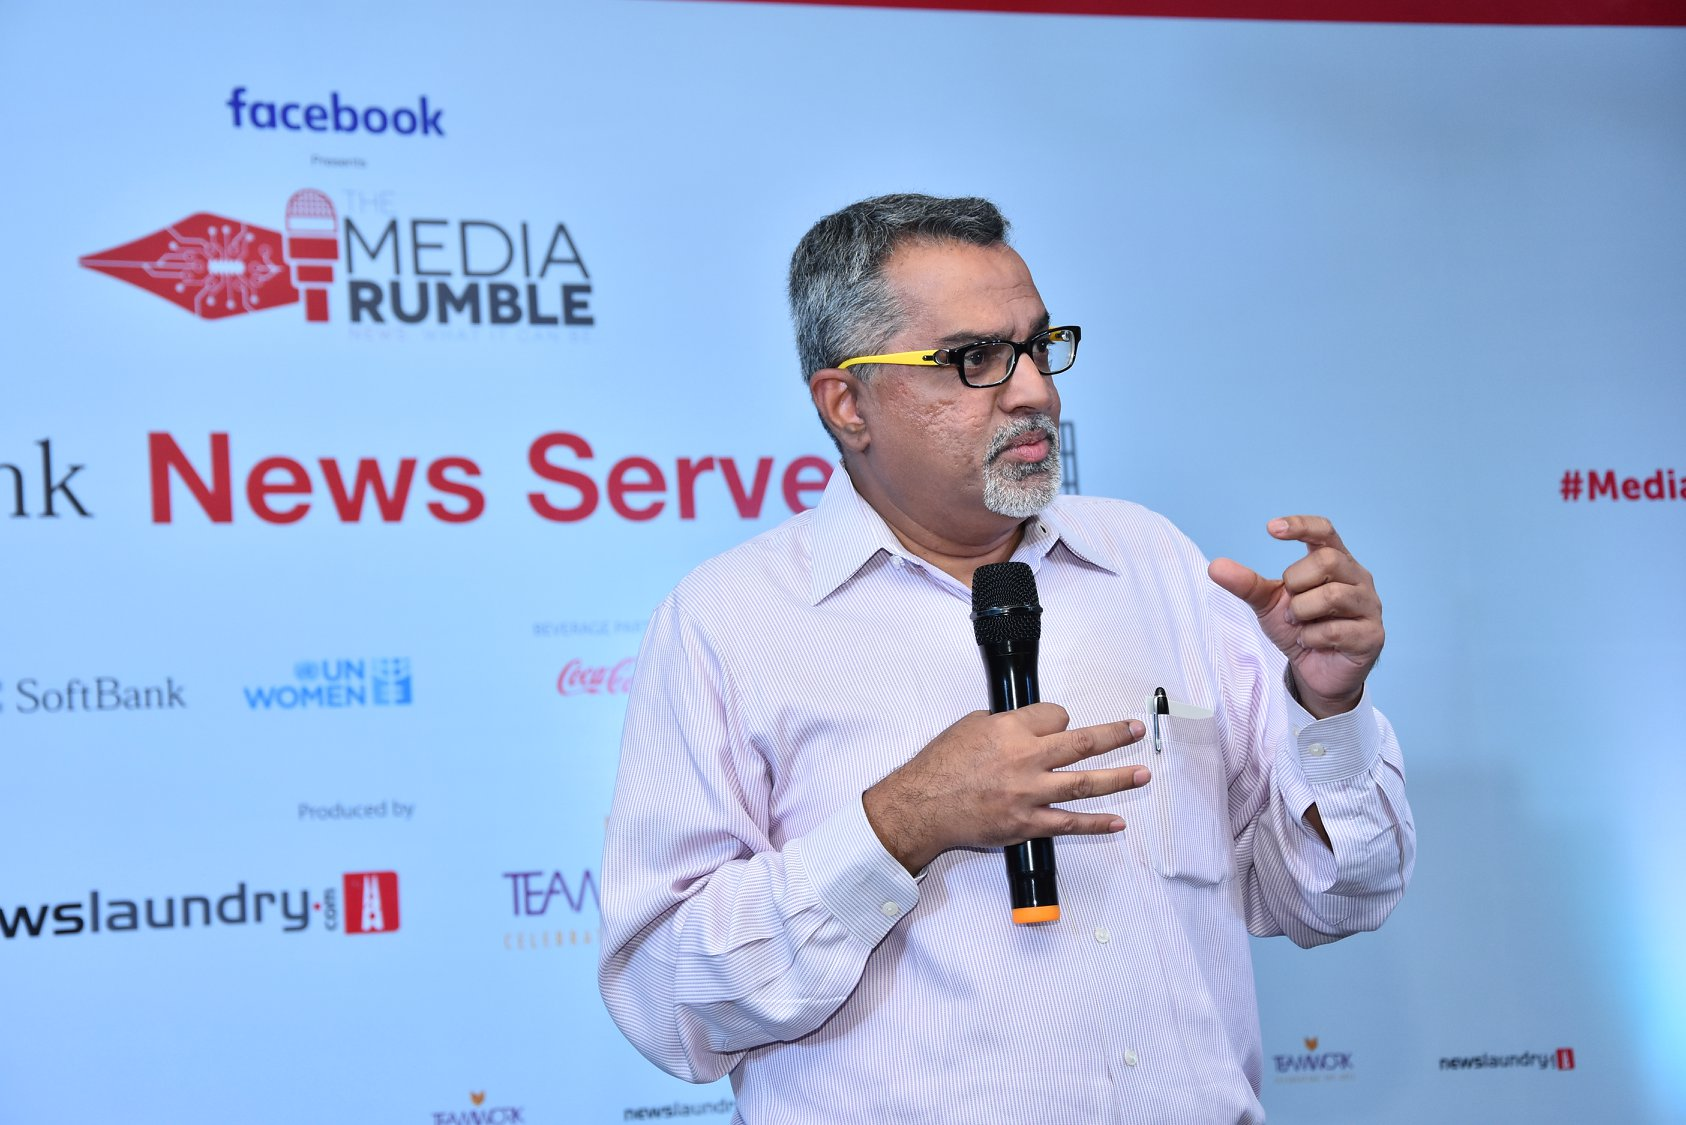 what tools can modern newsrooms use to deal with this disruption?